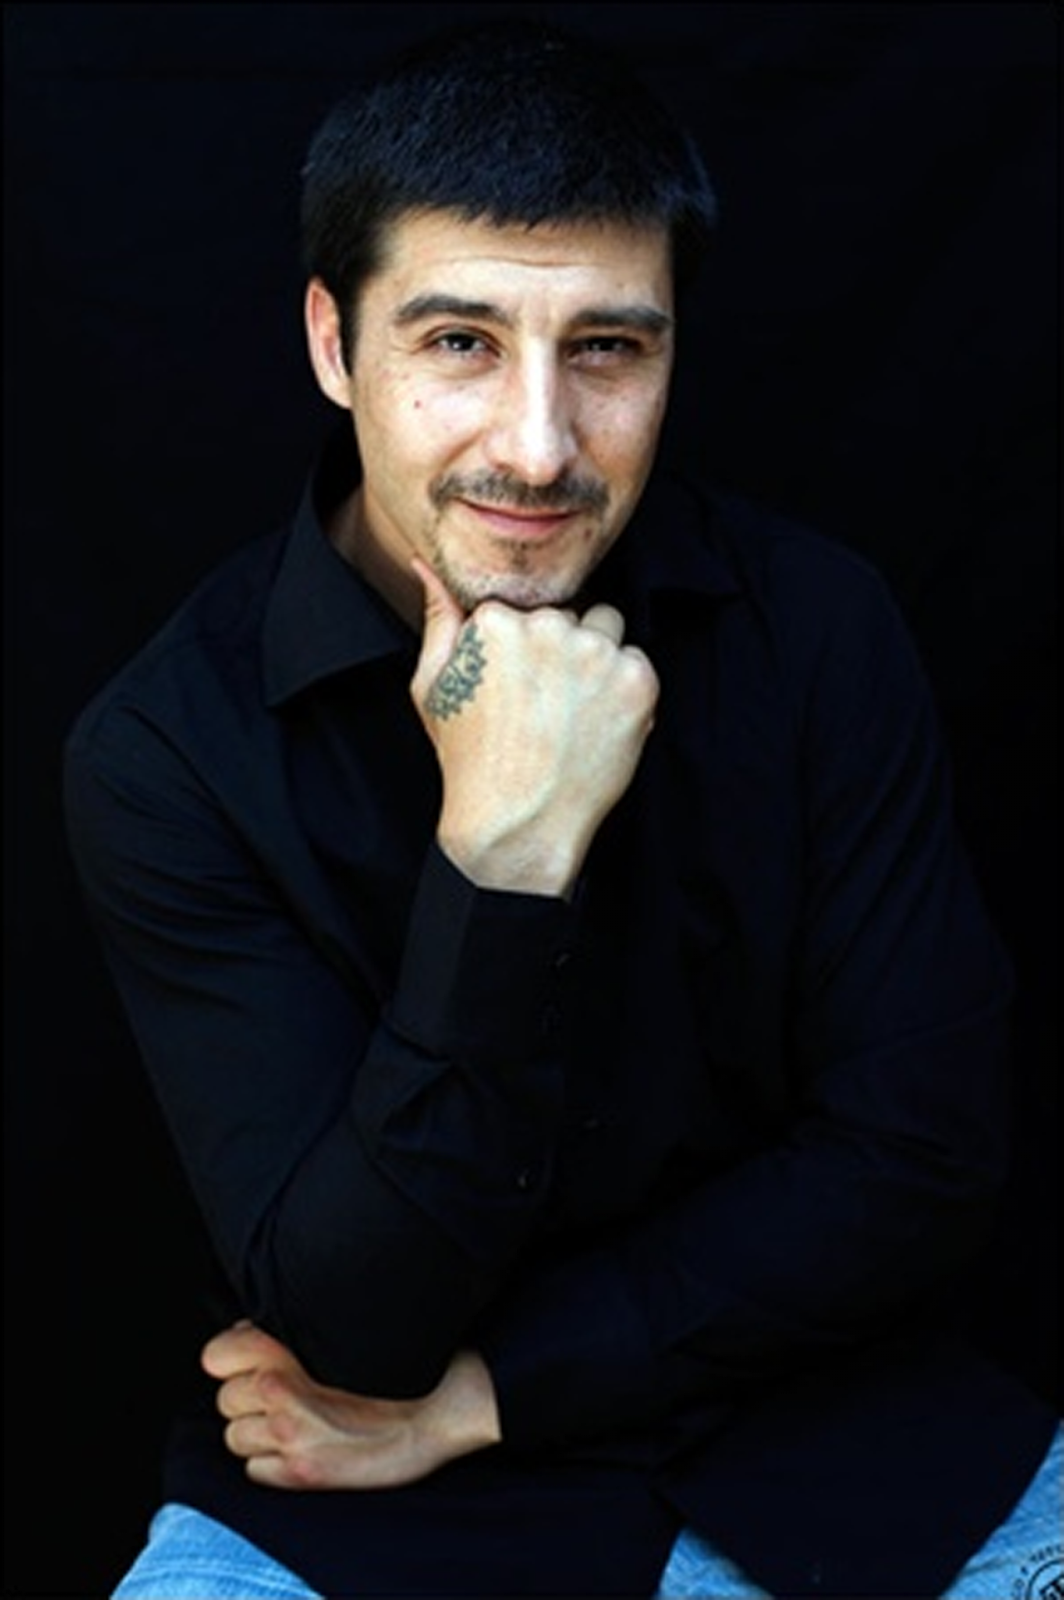 David Belle - Pictures, News, Information from the web